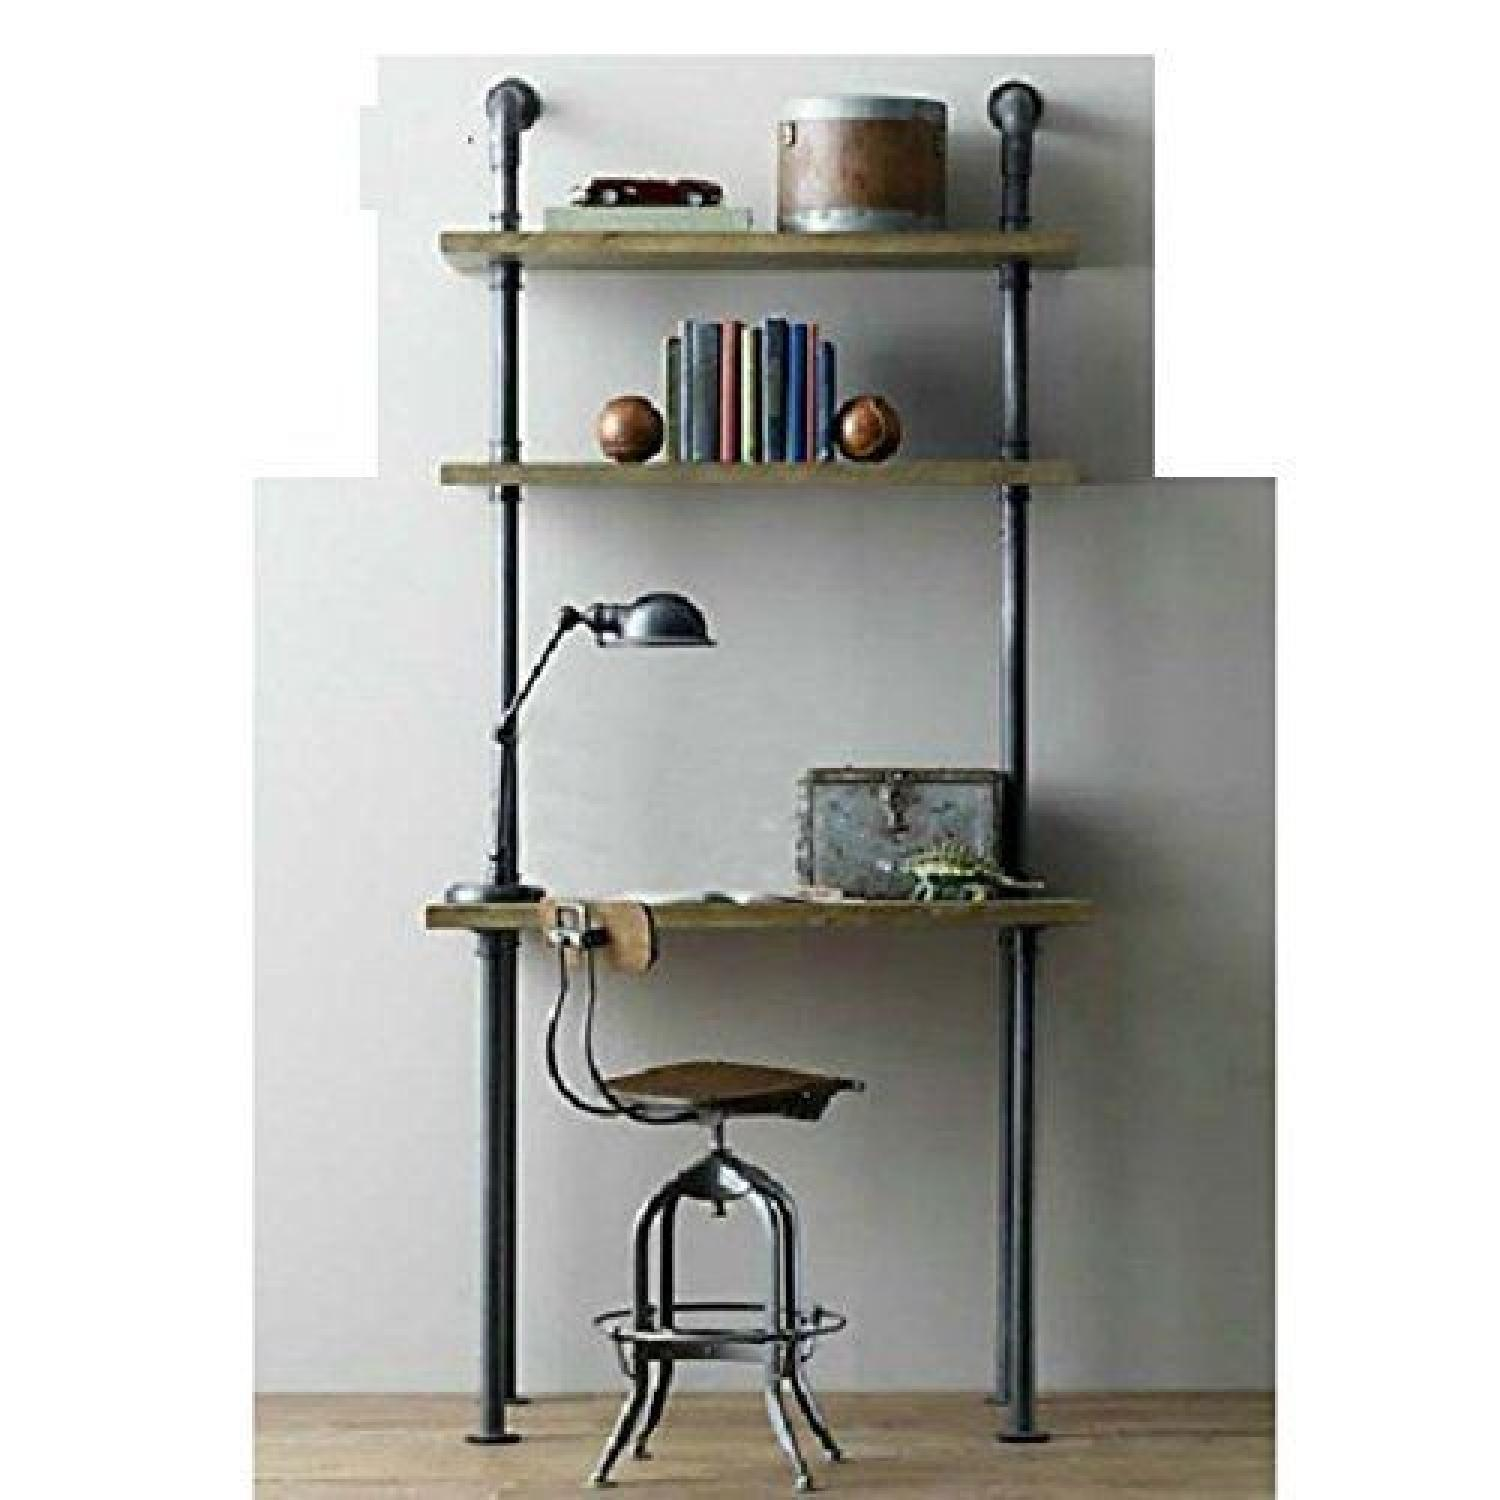 DiWhy Industrial Retro Wall Mount Desk-2